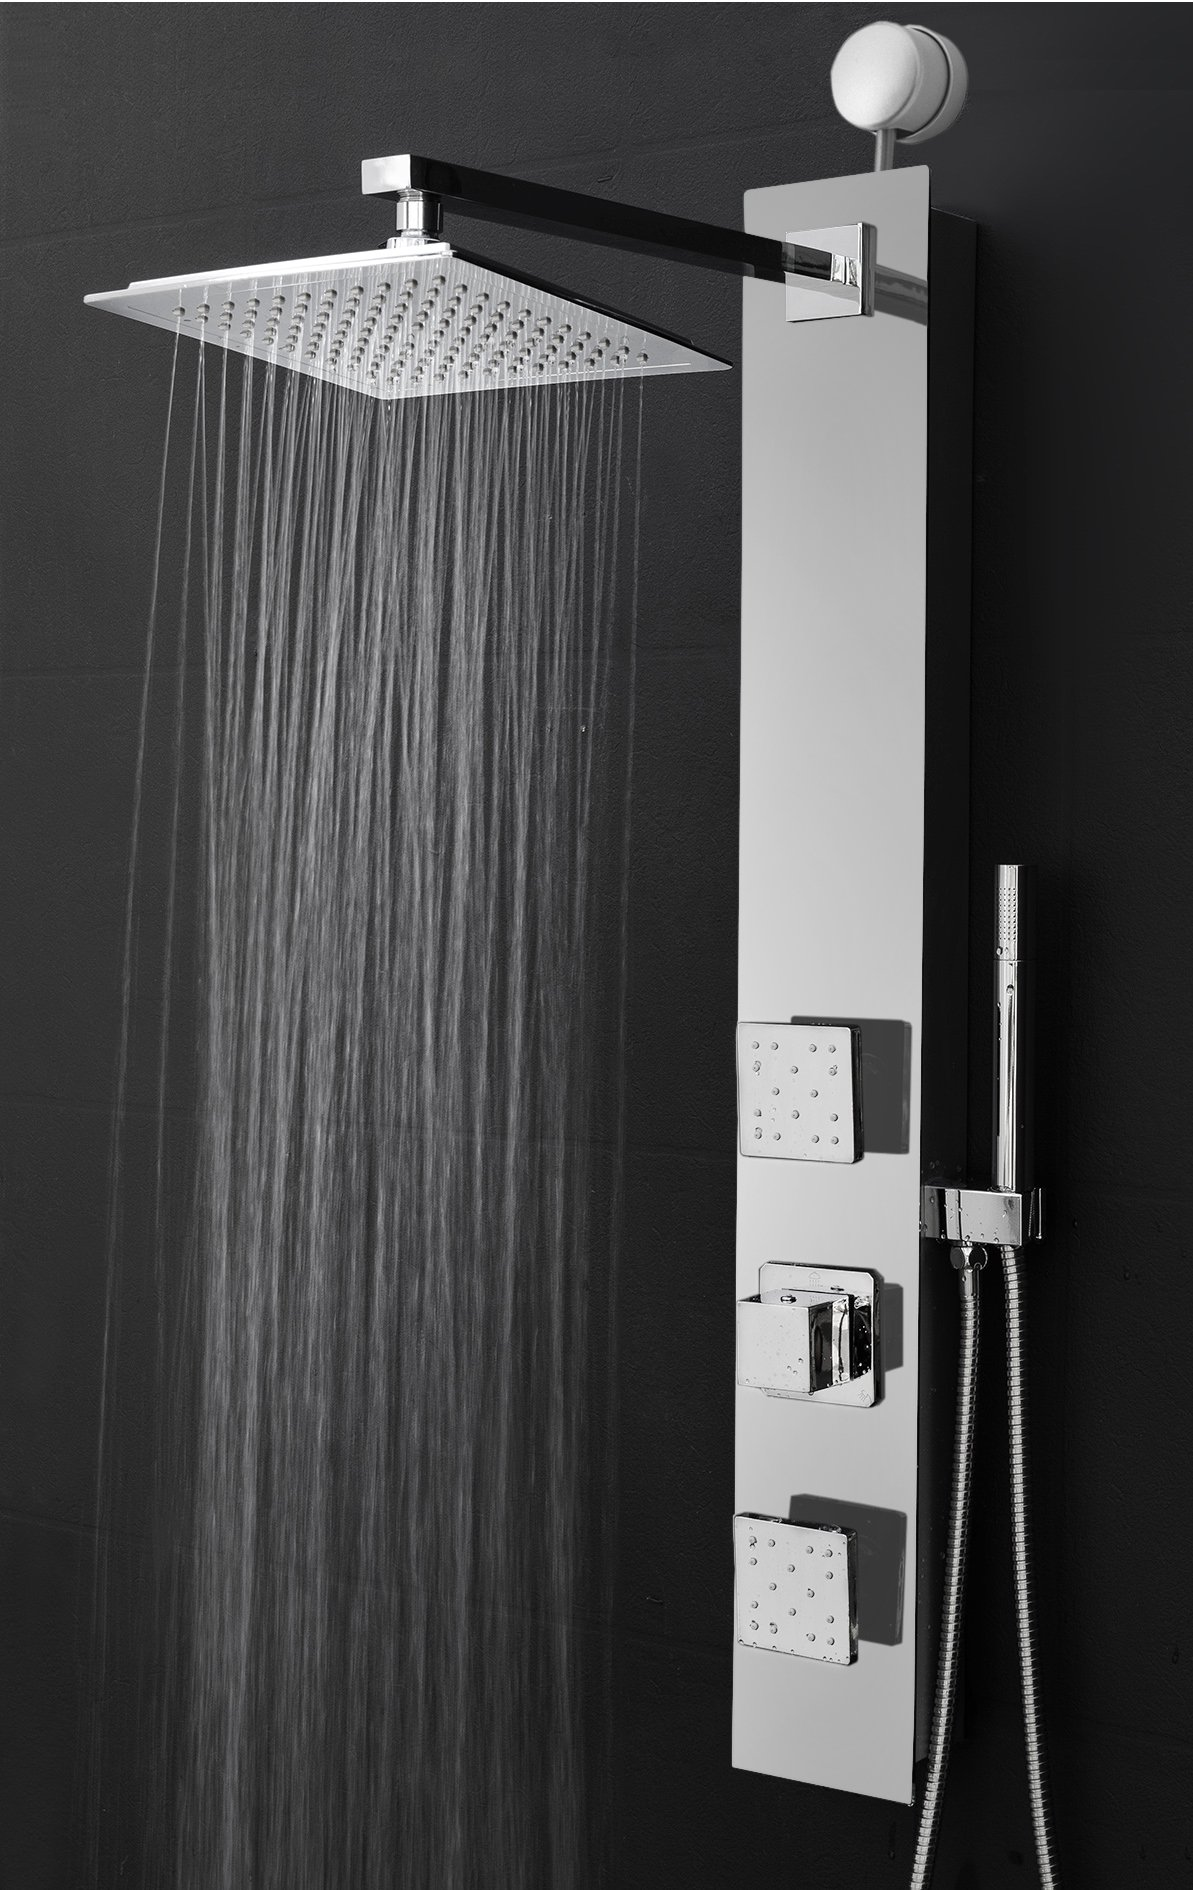 Perfetto Kitchen and Bath 35'' Easy Connect Wall Mount Tempered Glass Mirror Finish Made Rainfall Style Multi-Function Massage Shower Panel Tower System (SP0061)